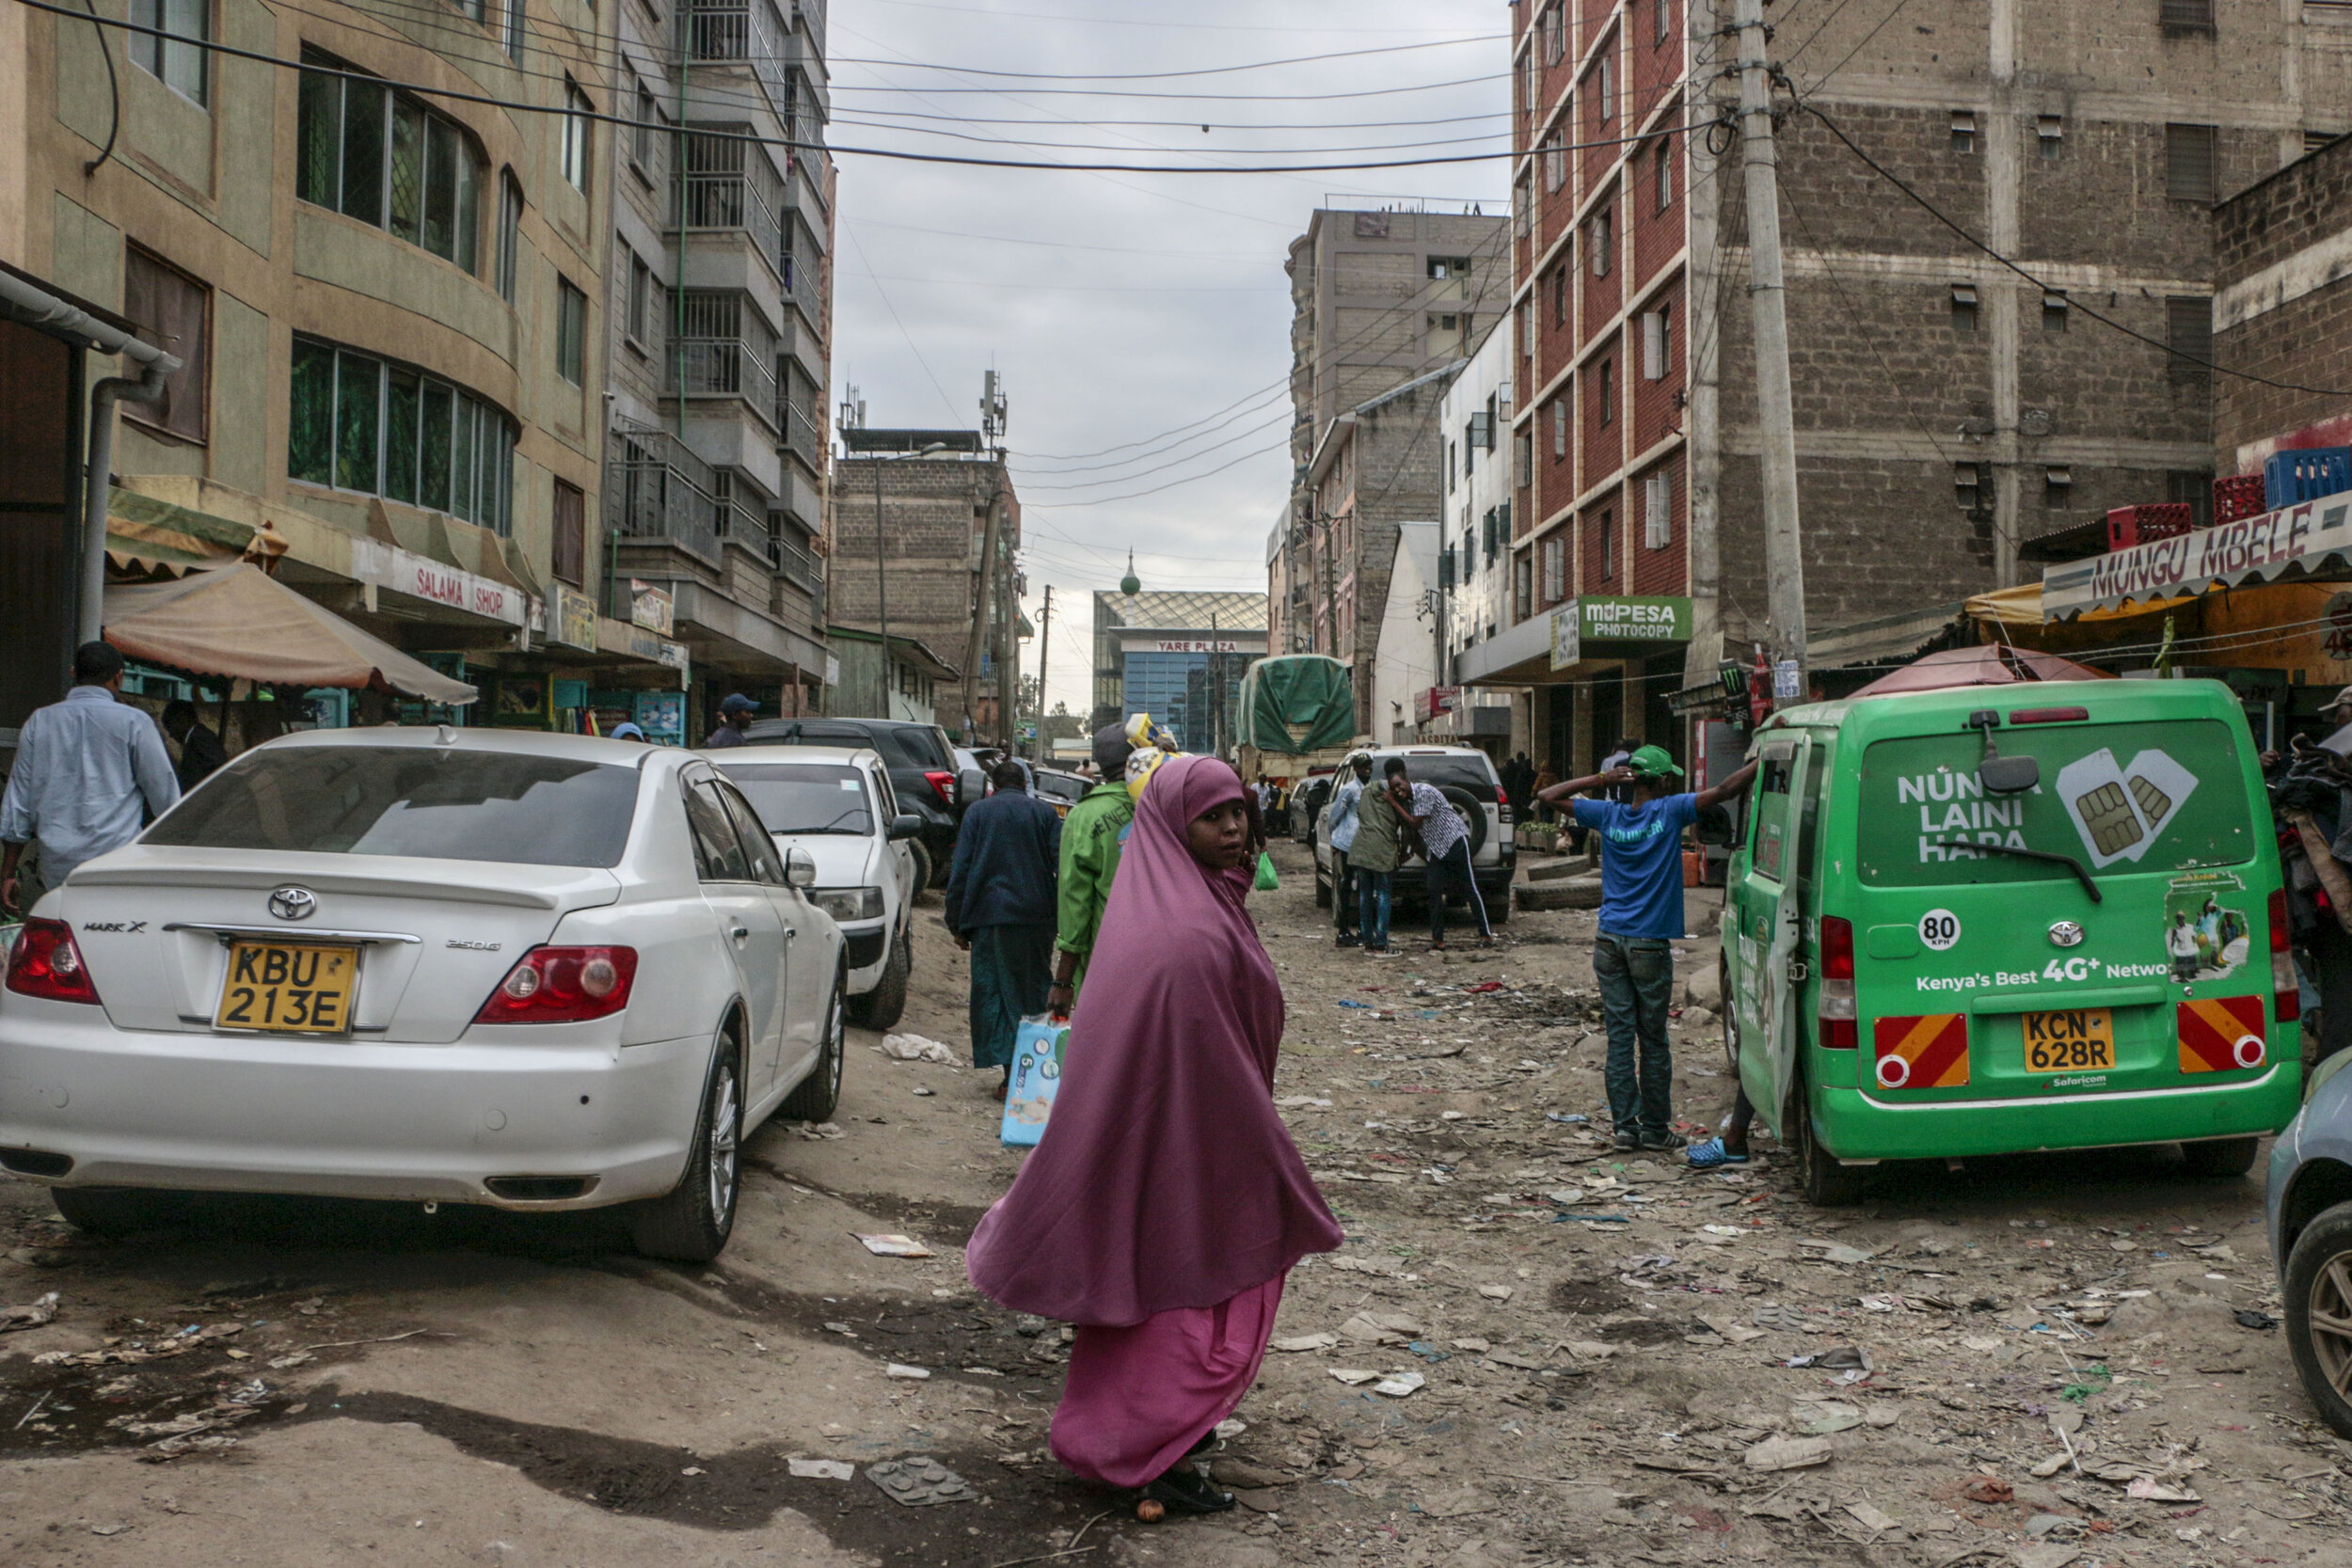 """Hamdi Kosar pauses while walking through the streets of Eastleigh, a predominantly Muslim and Somali neighborhood in Nairobi, Aug. 16. Many Somali refugees shop here while they are in the resettlement centers before they head elsewhere to seek asylum. This neighborhood was particularly hard for Kosar to see. """"It's very emotional for me to see this,"""" she said. """"My religion teaches us to care for the poor and people don't even stop to talk to them. I want to help people, but I also feel helpless because I can't give them enough."""